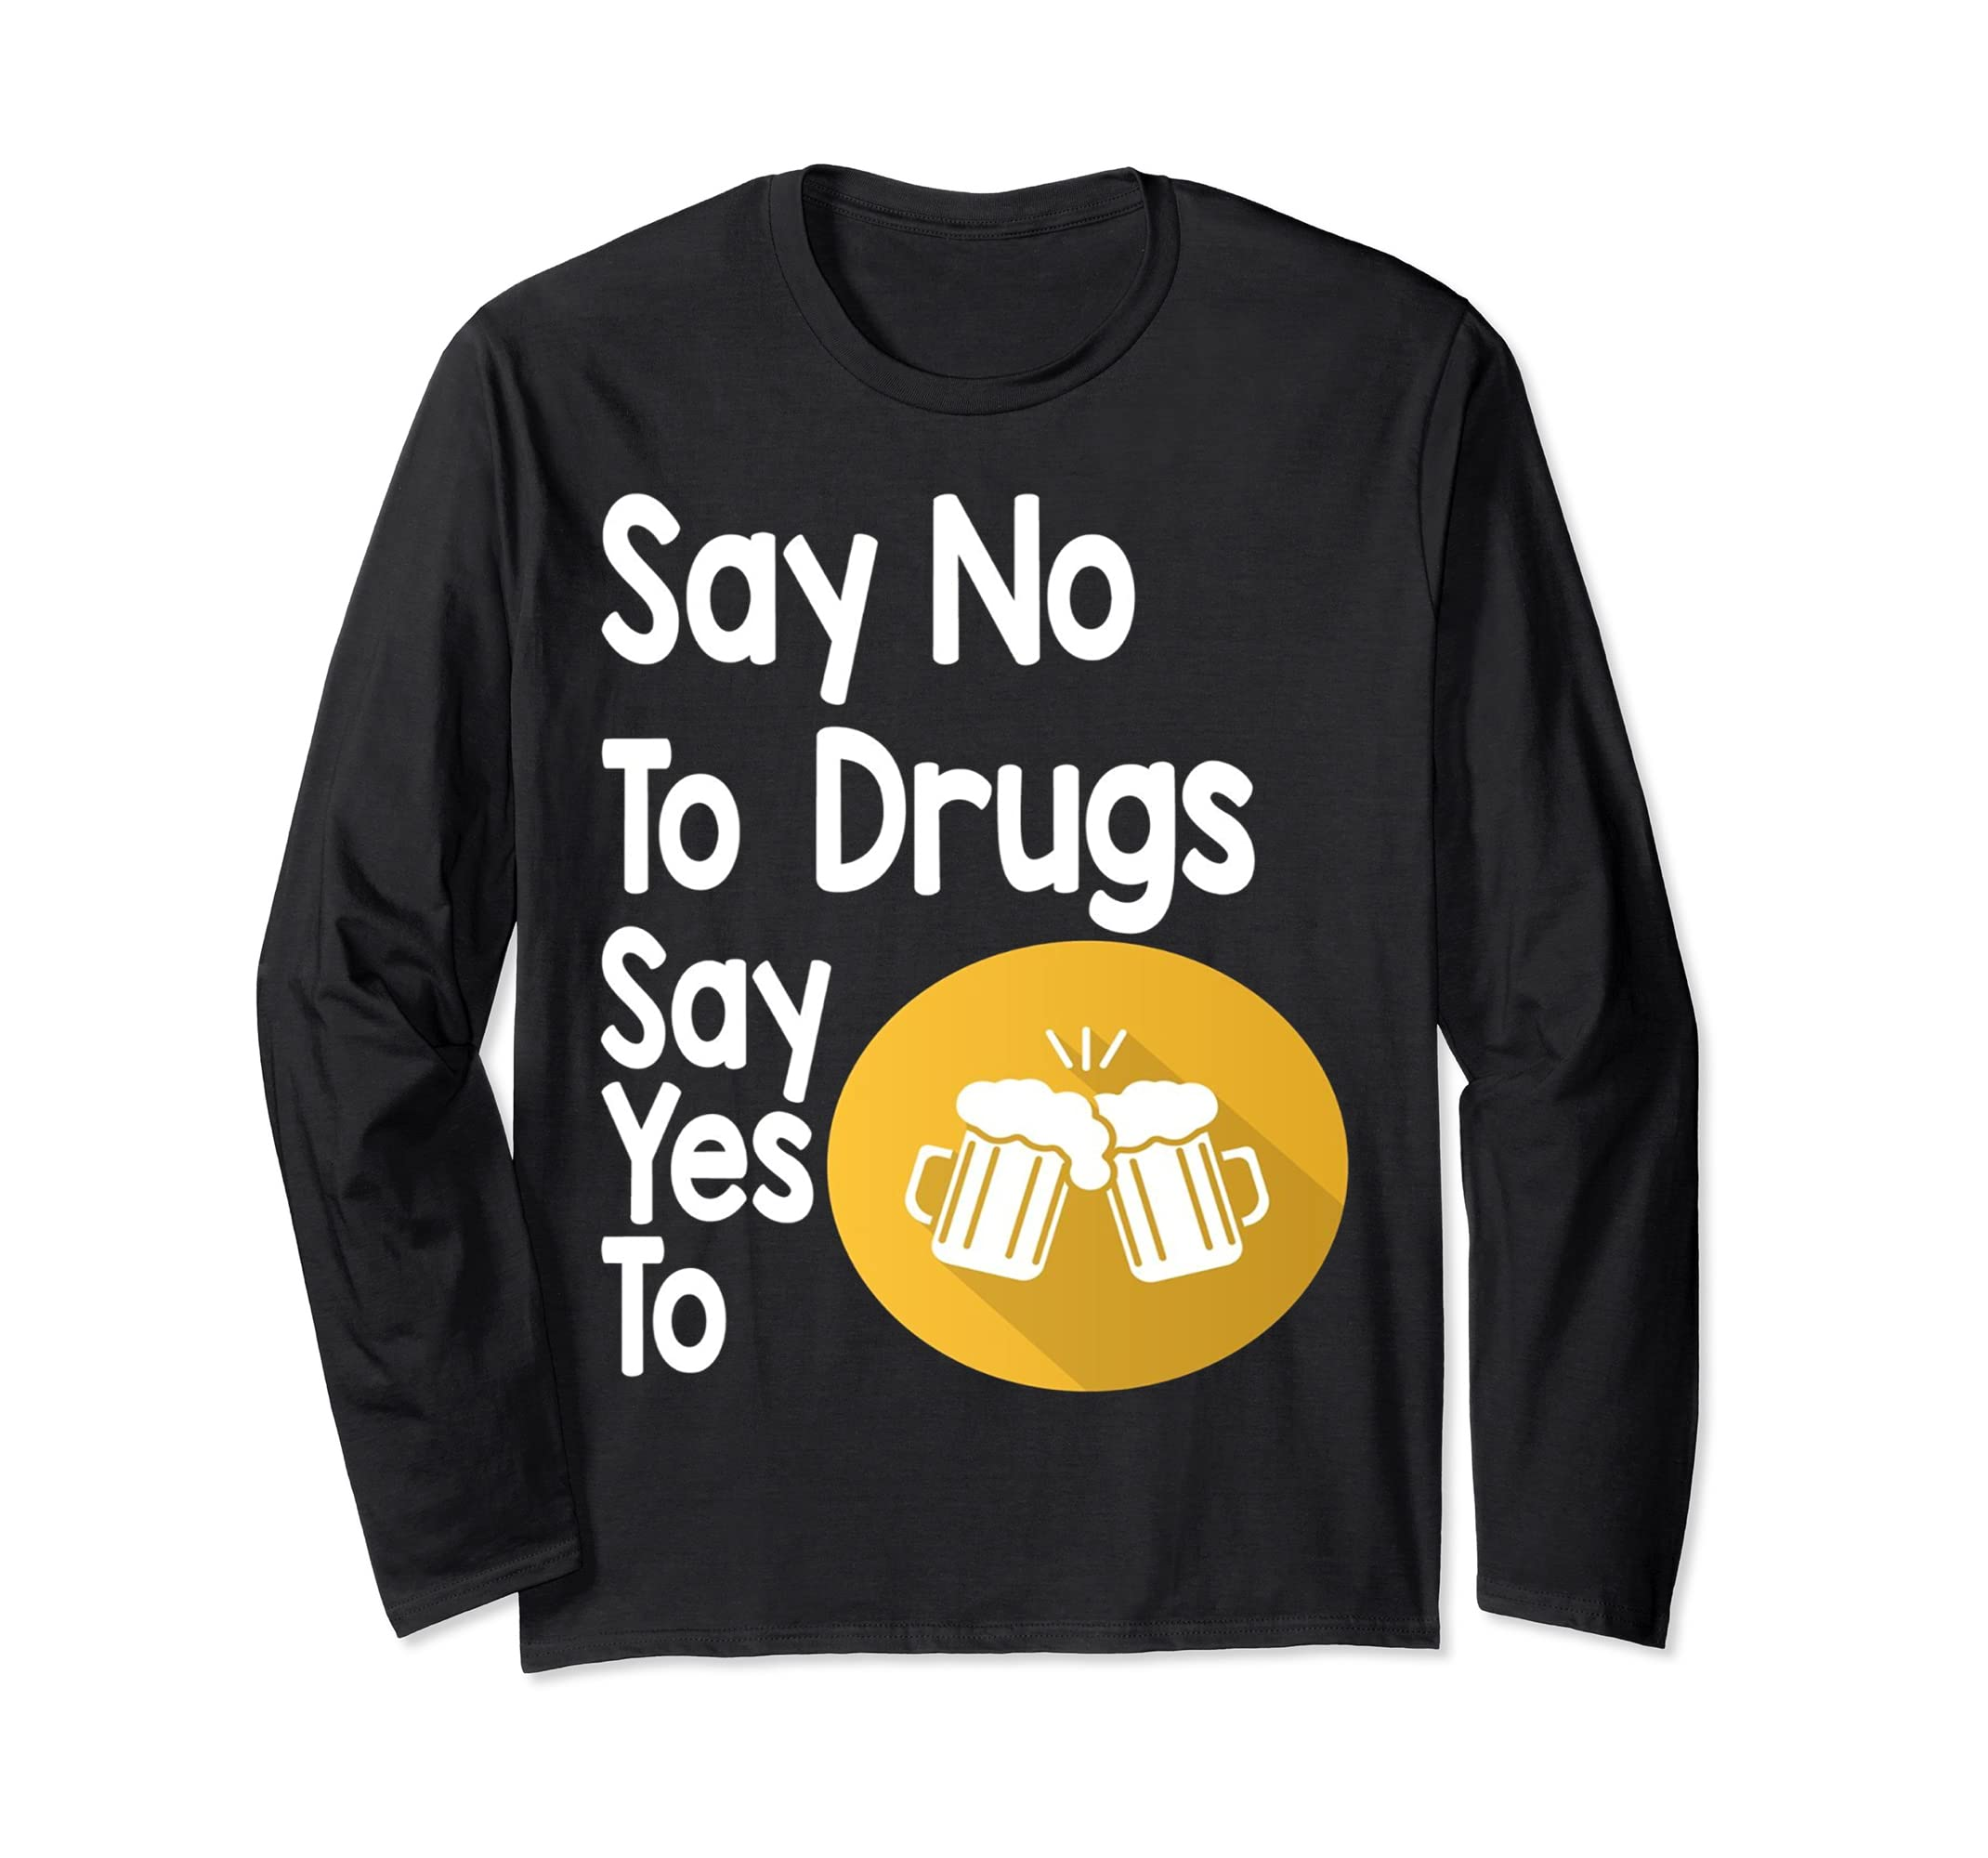 cd2078c76 Amazon.com  Say No To Drugs Say Yes To Beer Long-Sleeve-Tee  Clothing